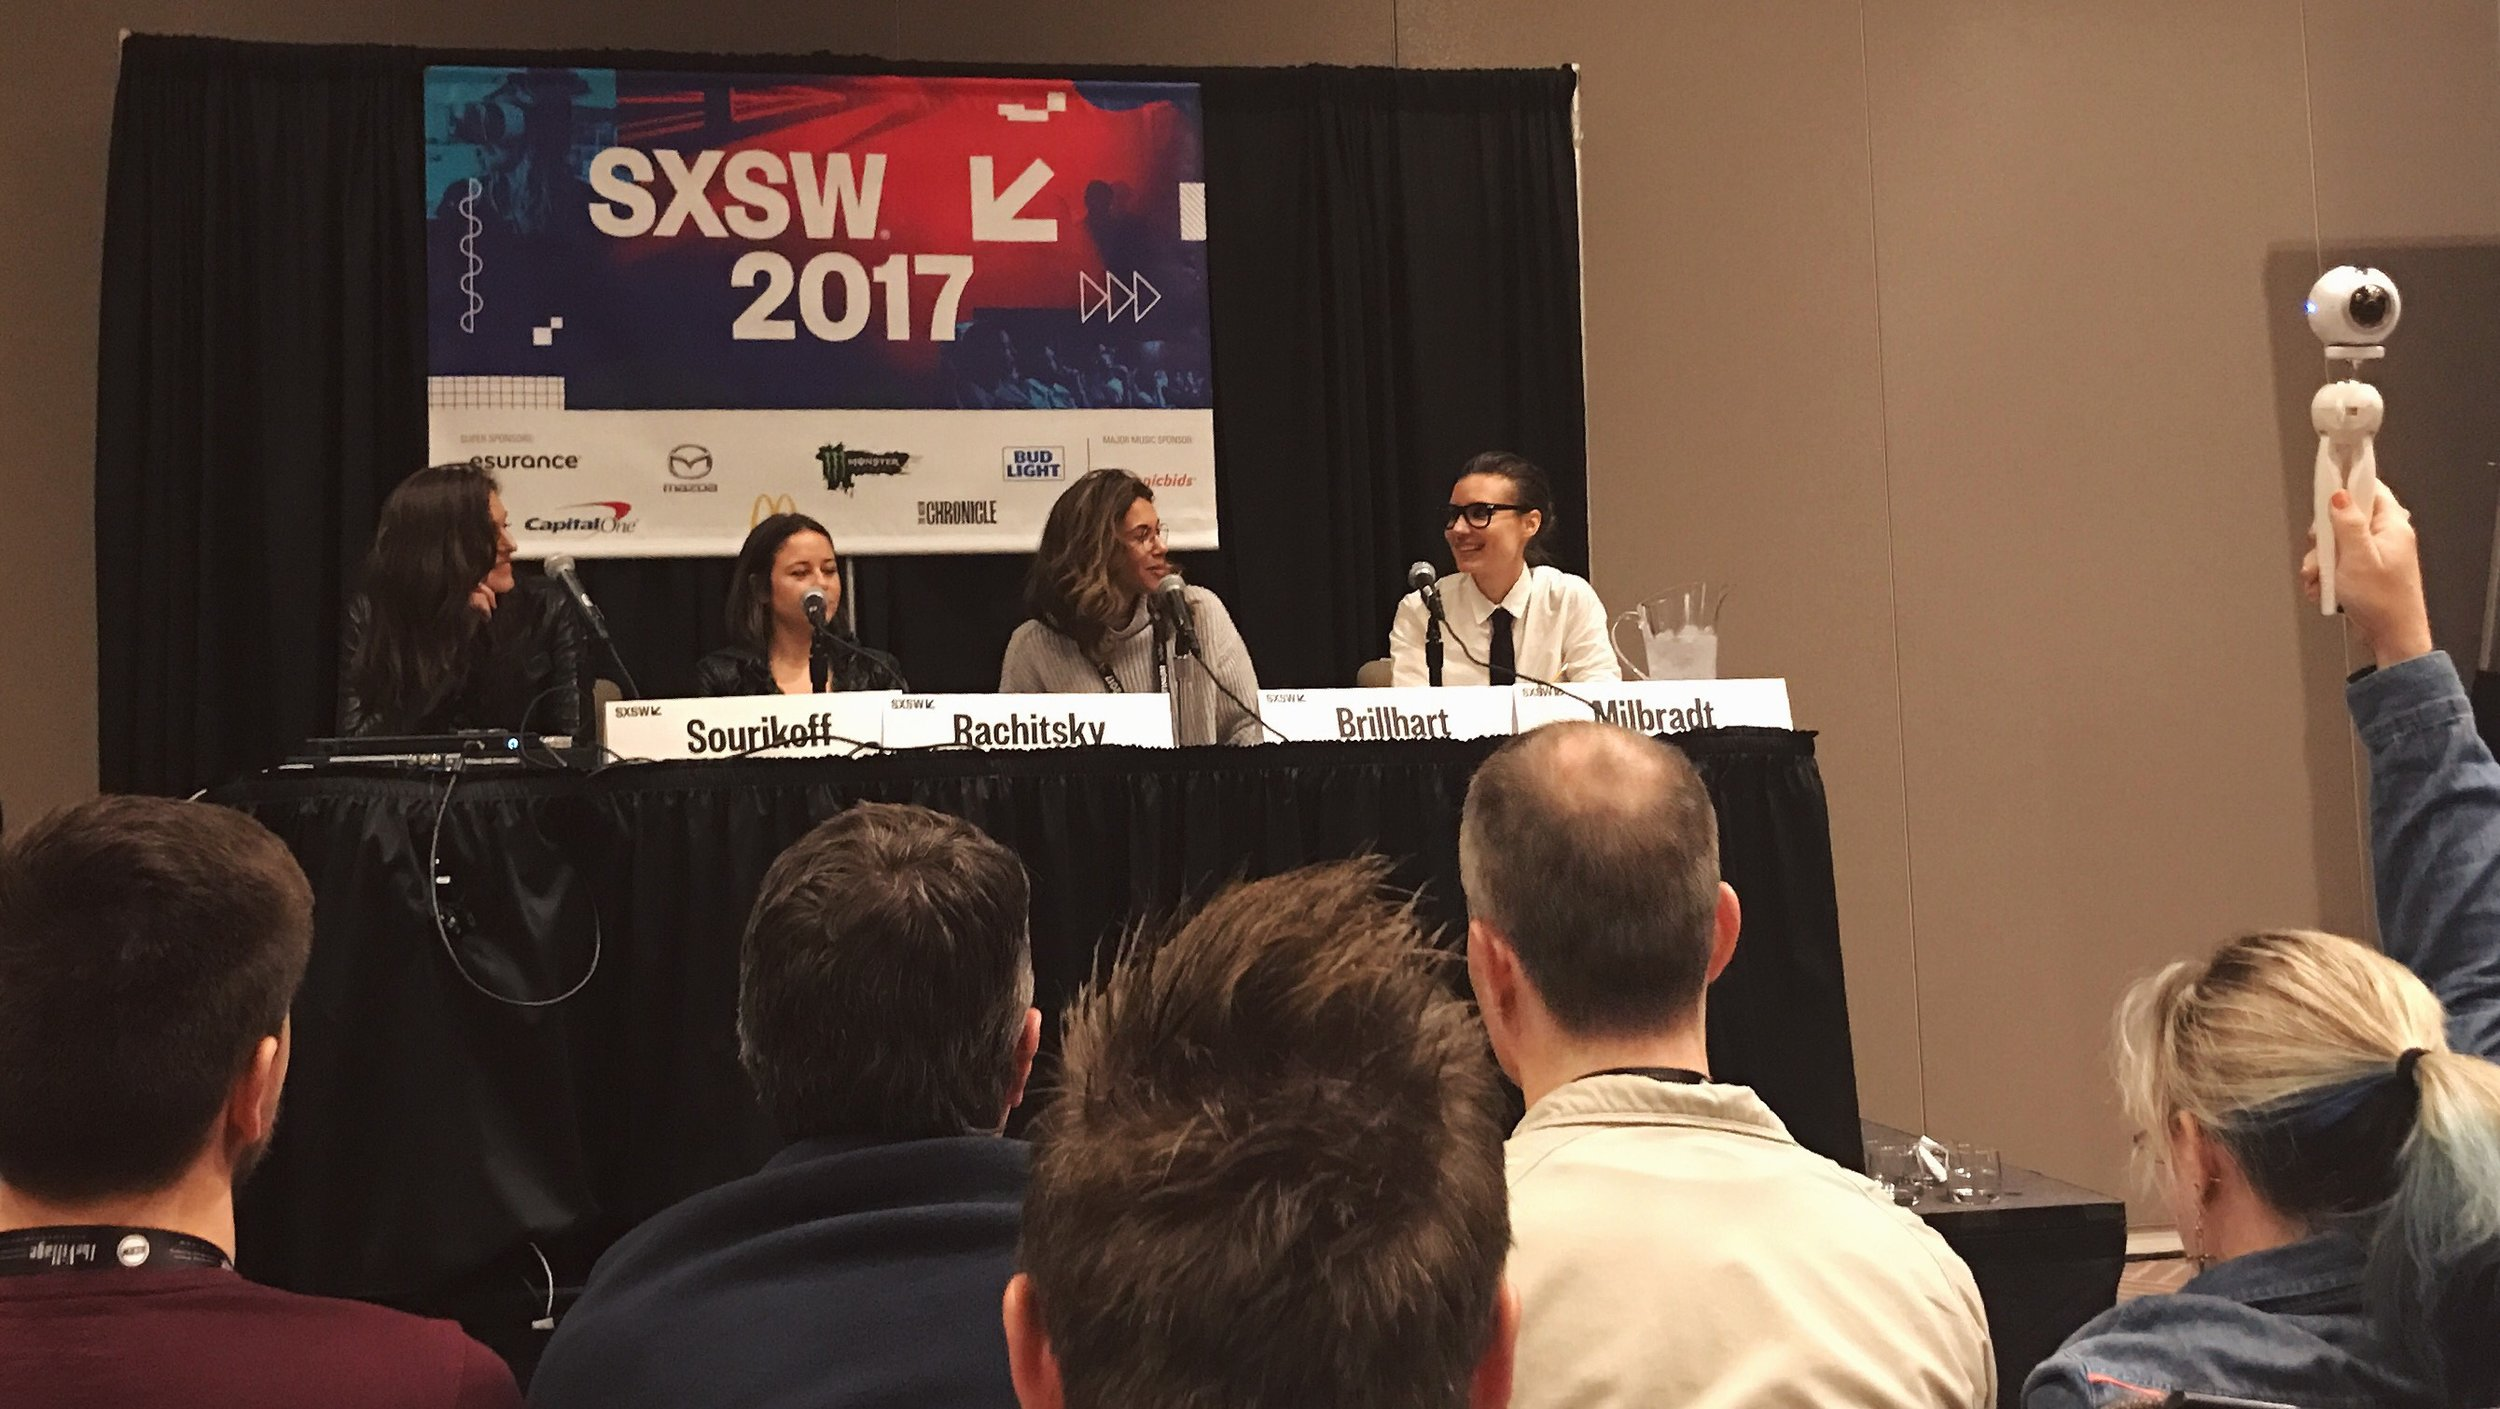 SXSW sharing the stage with Julia Sourikoff (Tool), Yelena Rachitsky (Oculus) and Jessica Brillhart